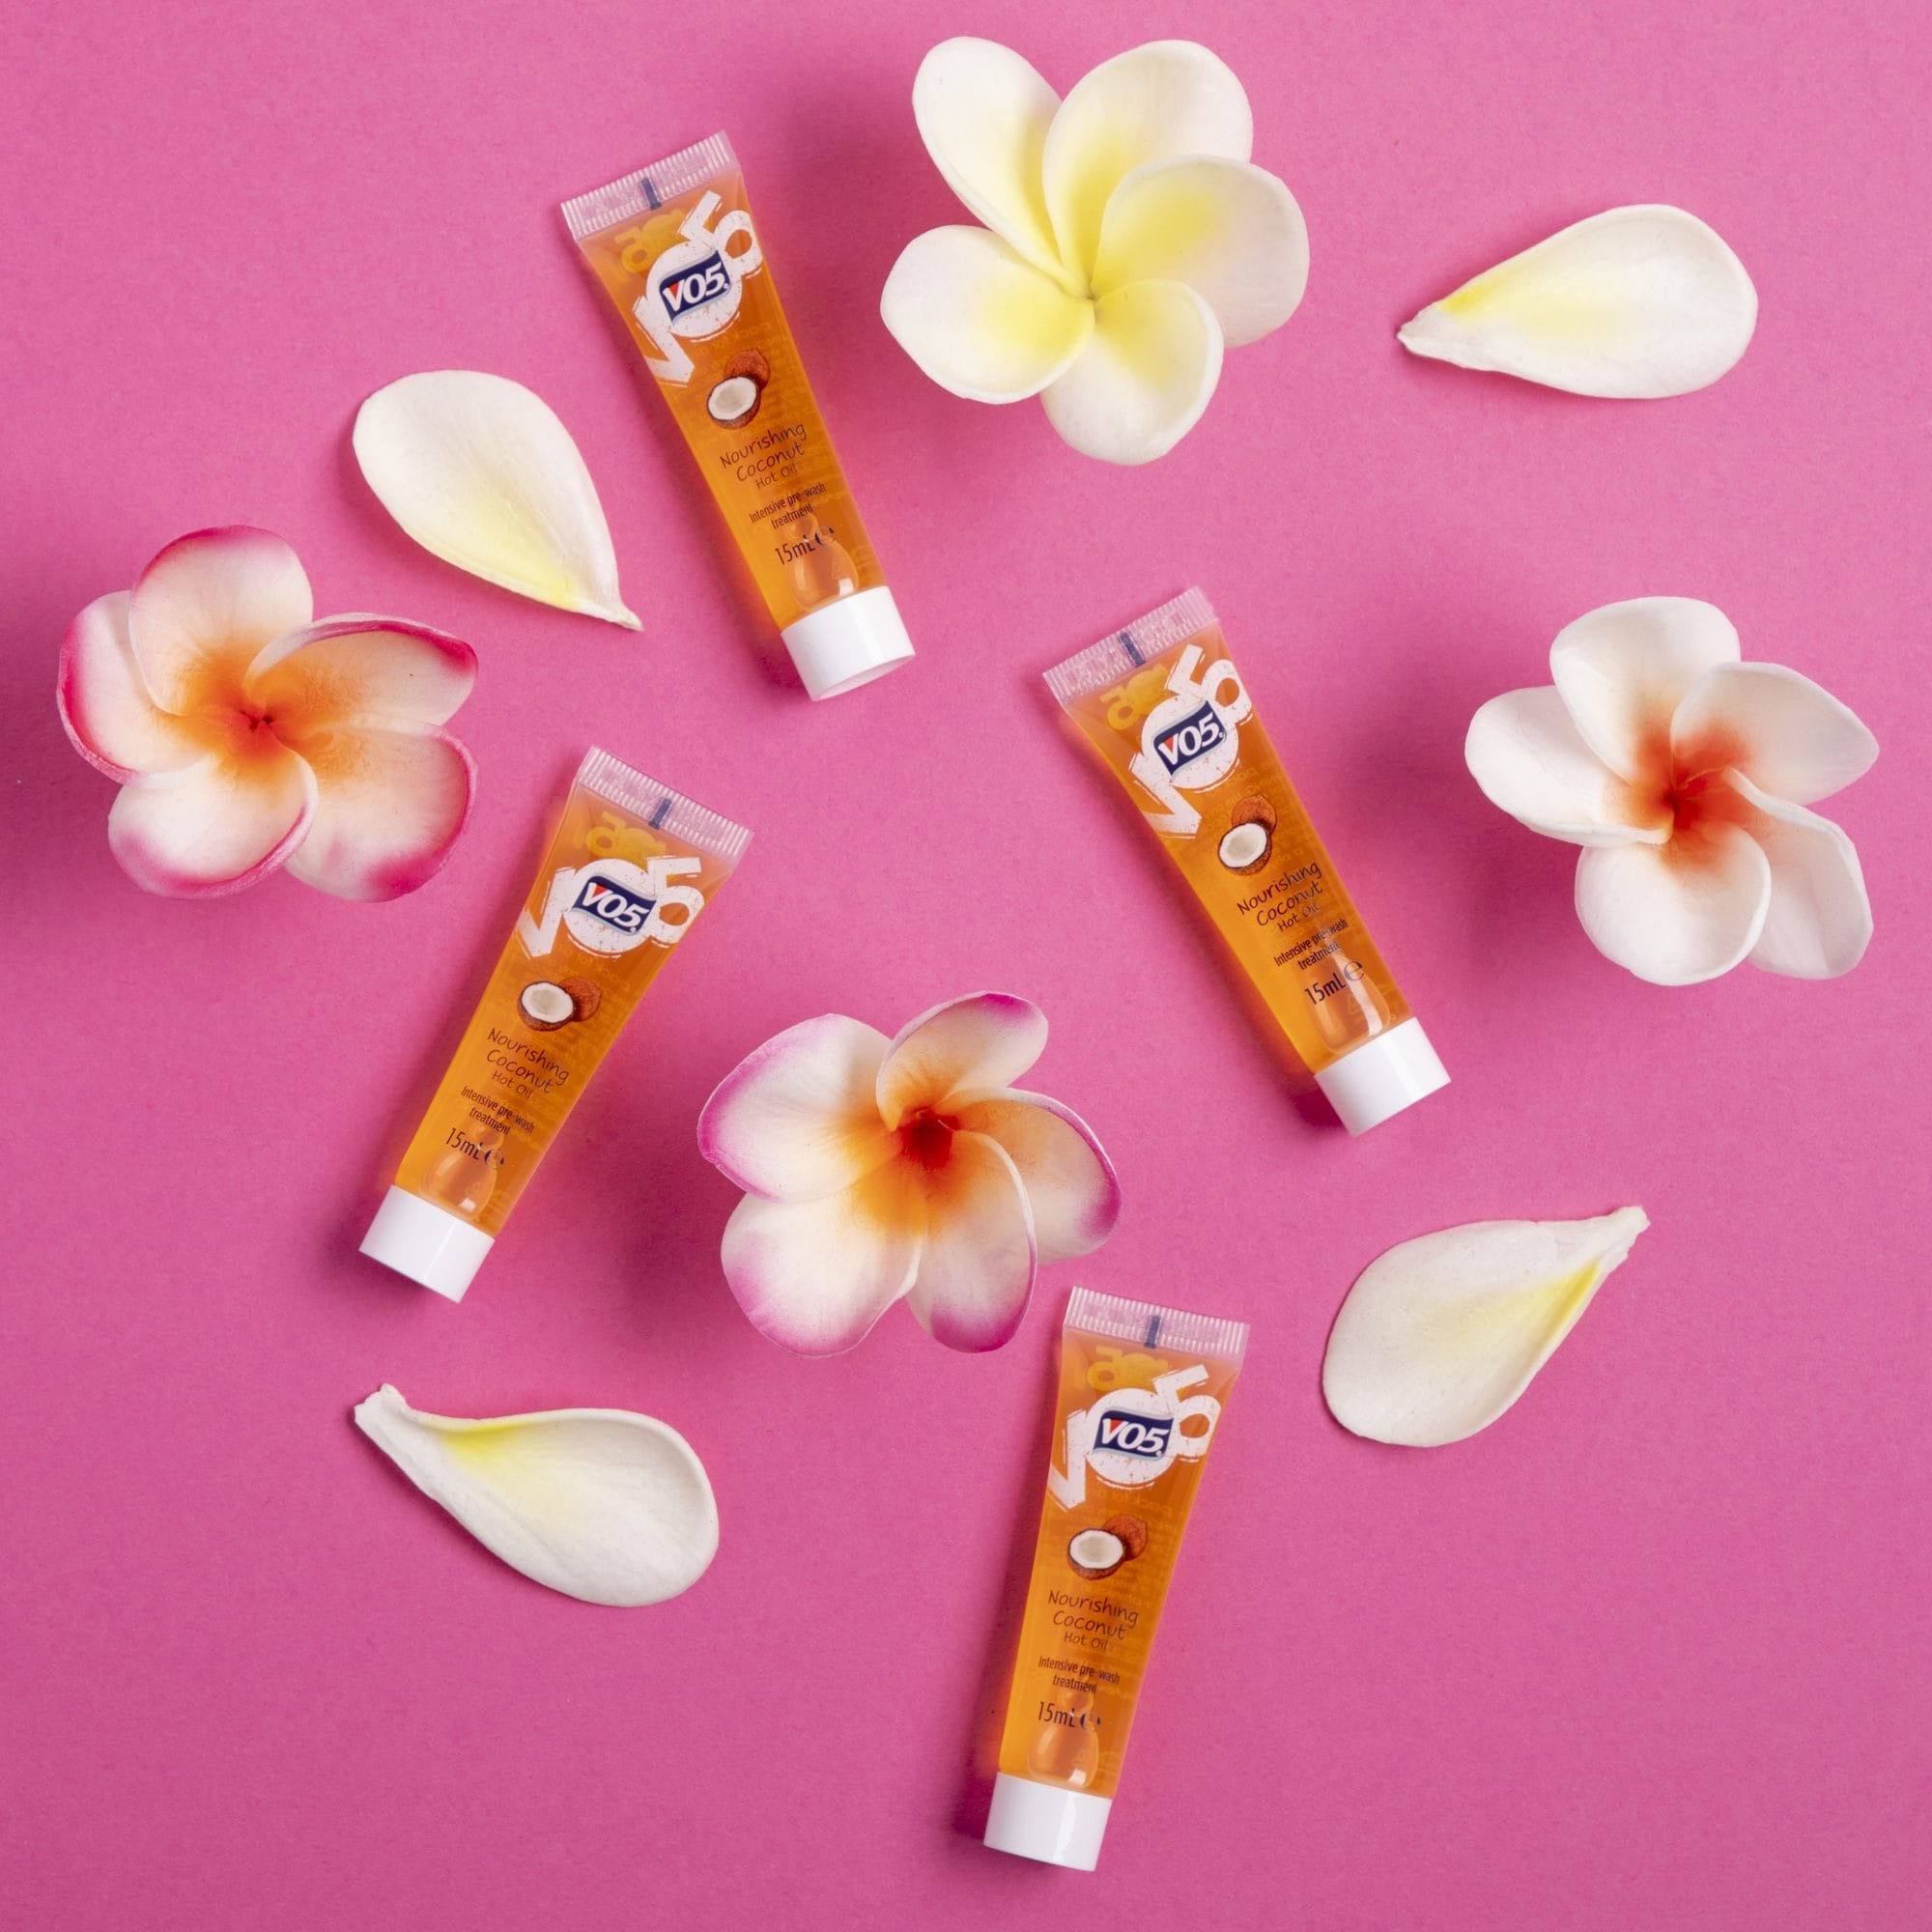 VO5 hot oil: Flat lay of the the new VO5 Nourishing Coconut Oil on a pink background with frangipani flowers dotted around